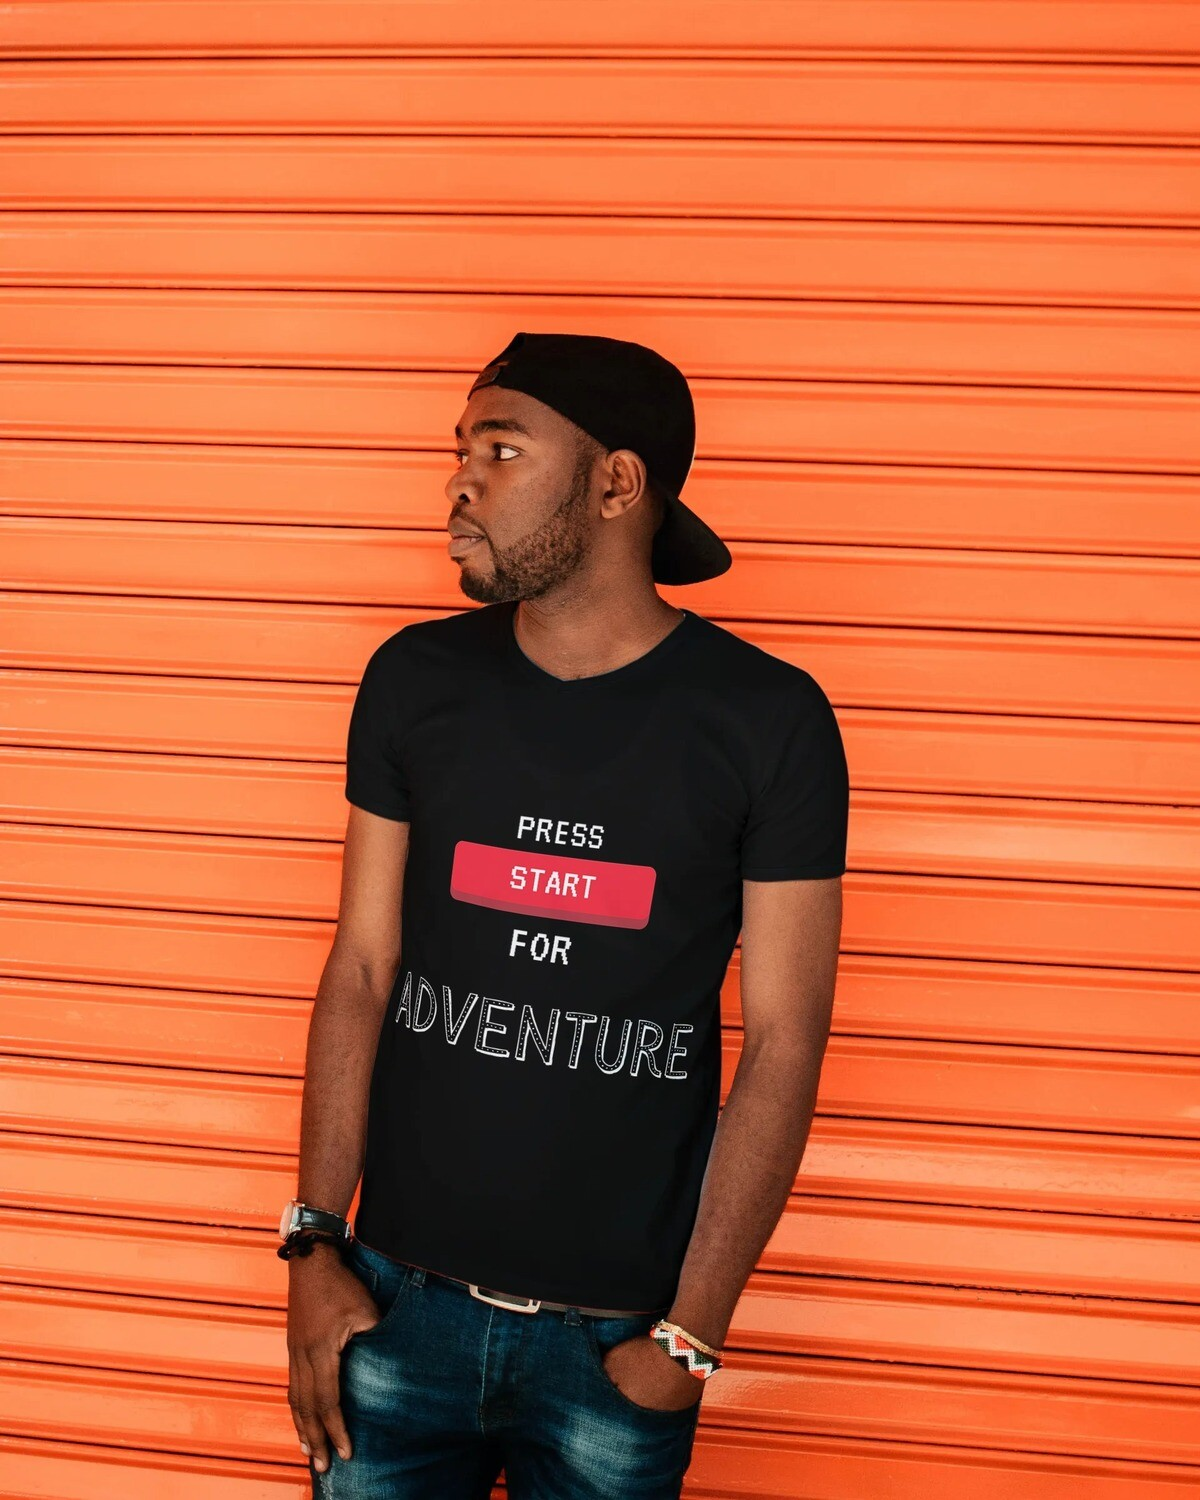 Press Start for Adventure! Short-Sleeve Unisex T-Shirt